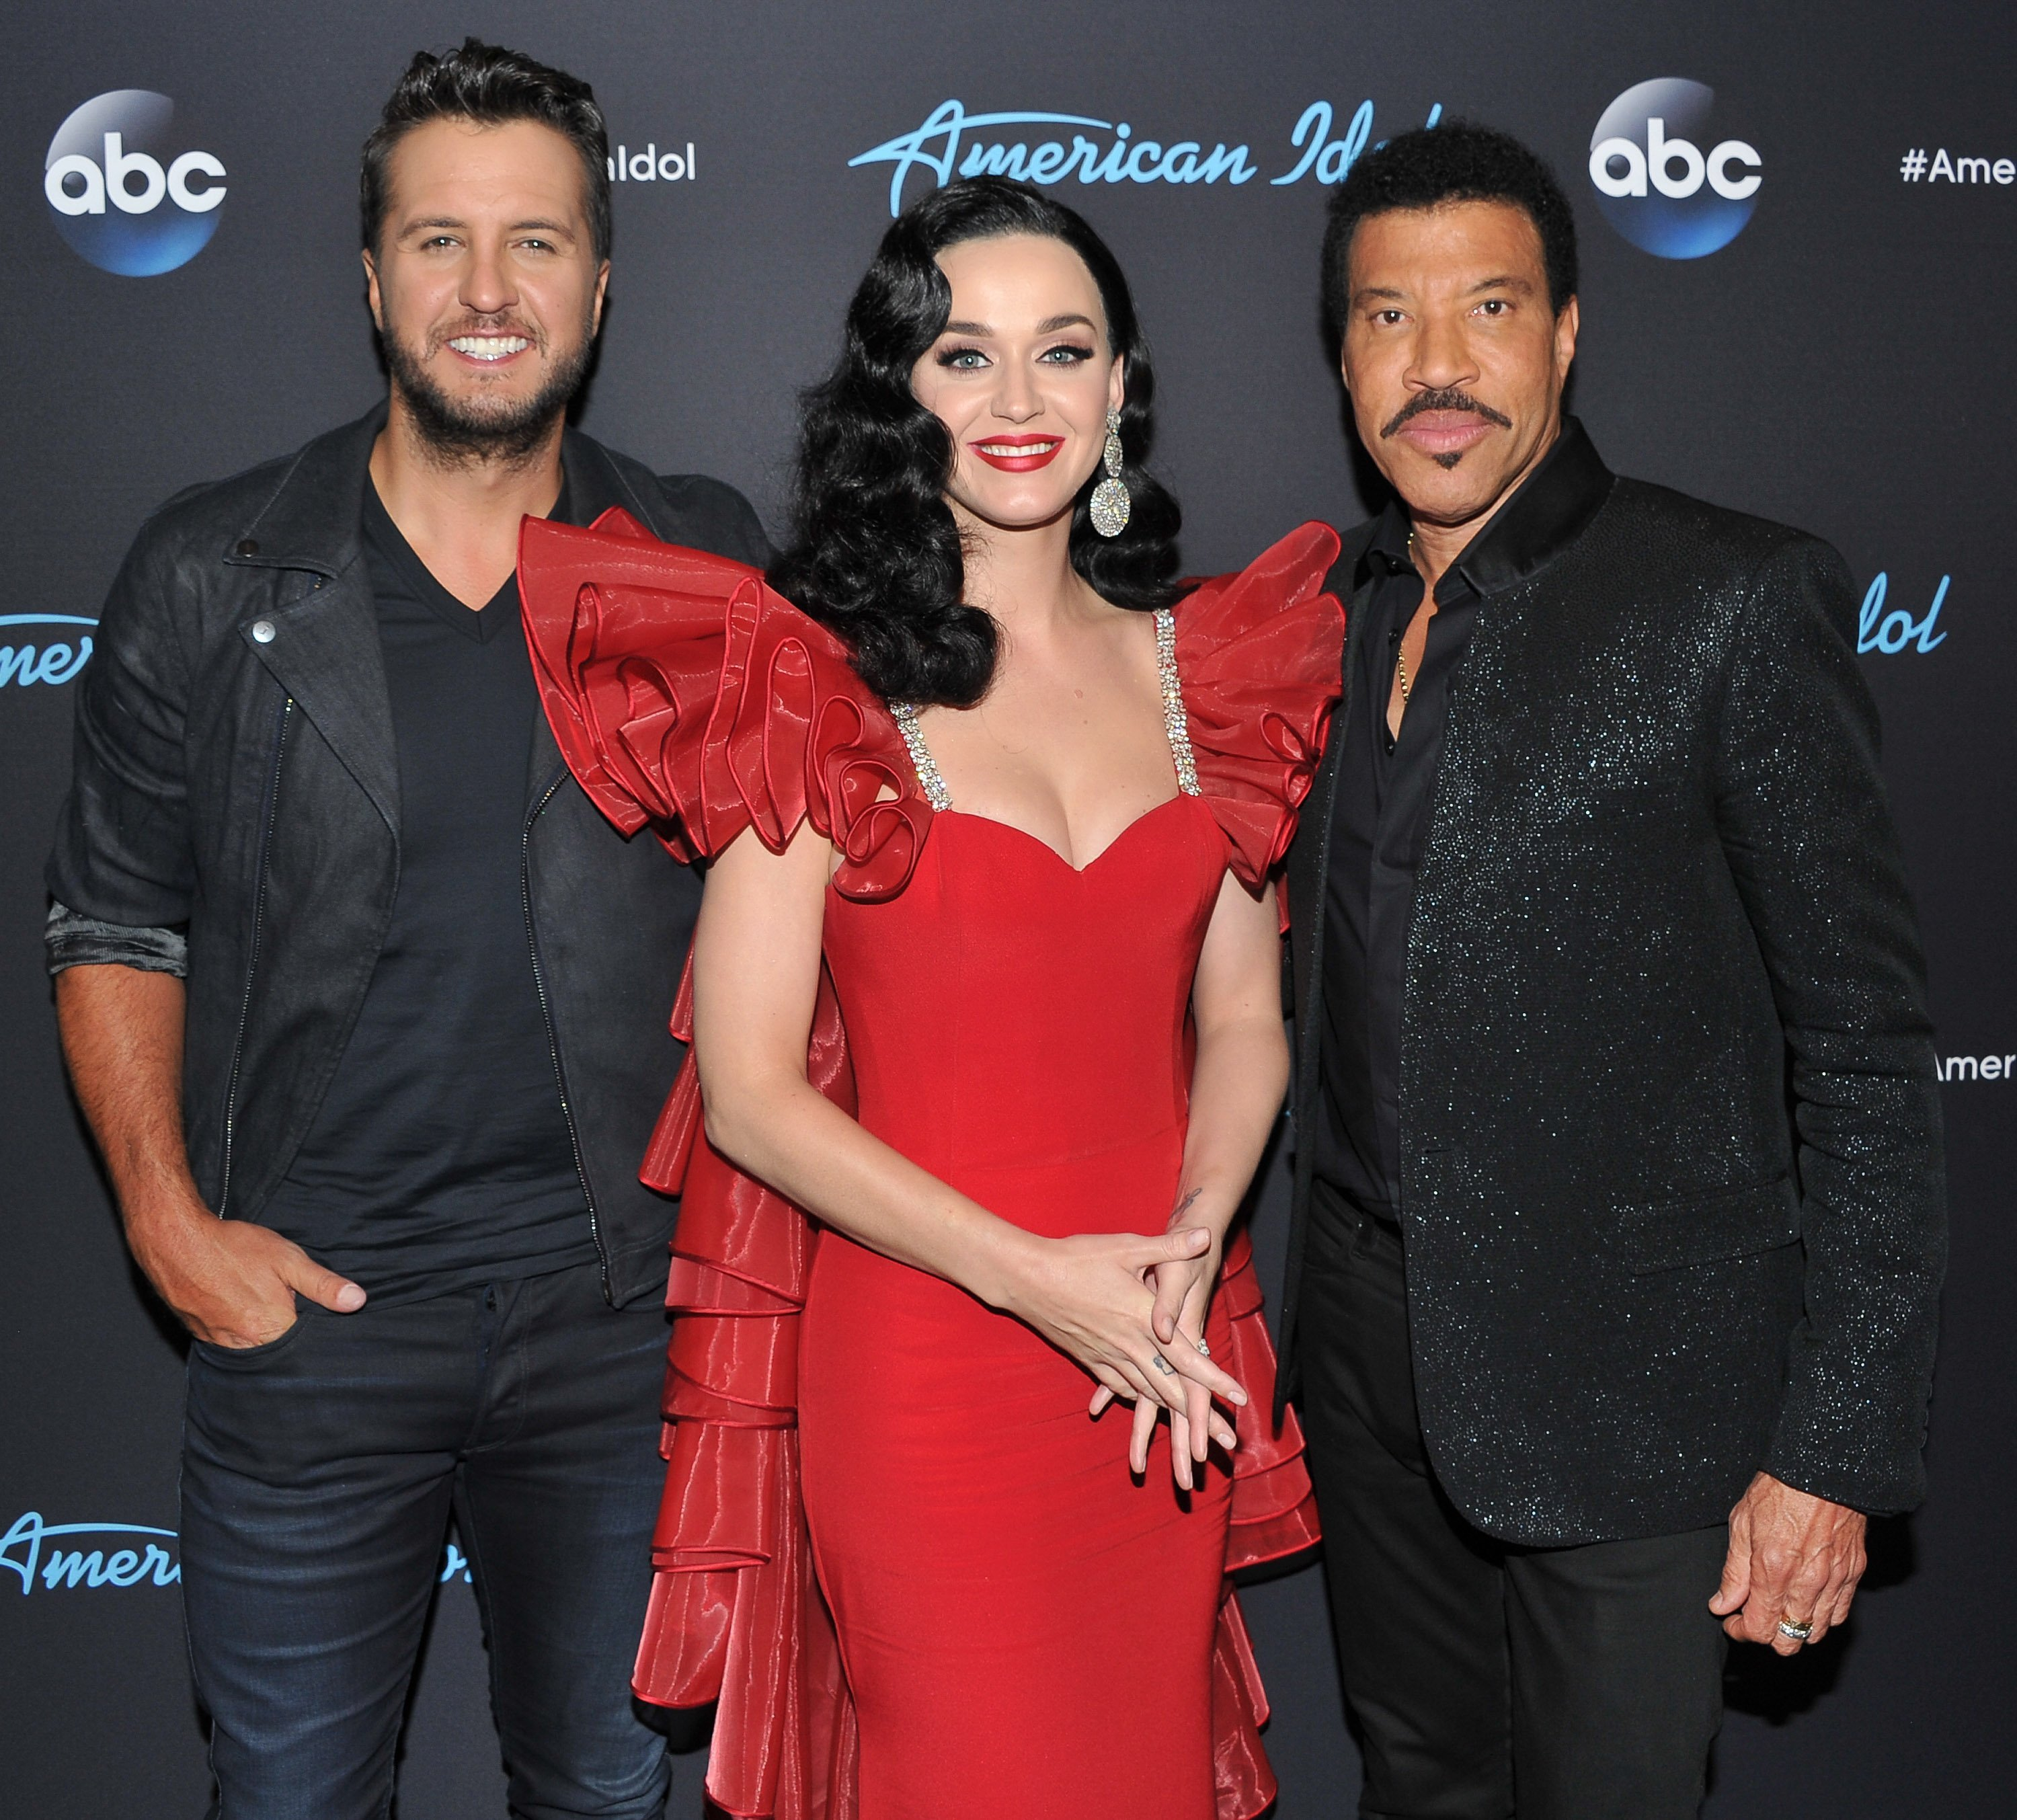 """Kate Perry, Luke Bryan, and Lionel Richie are the latest hosts of """"American Idol"""" 